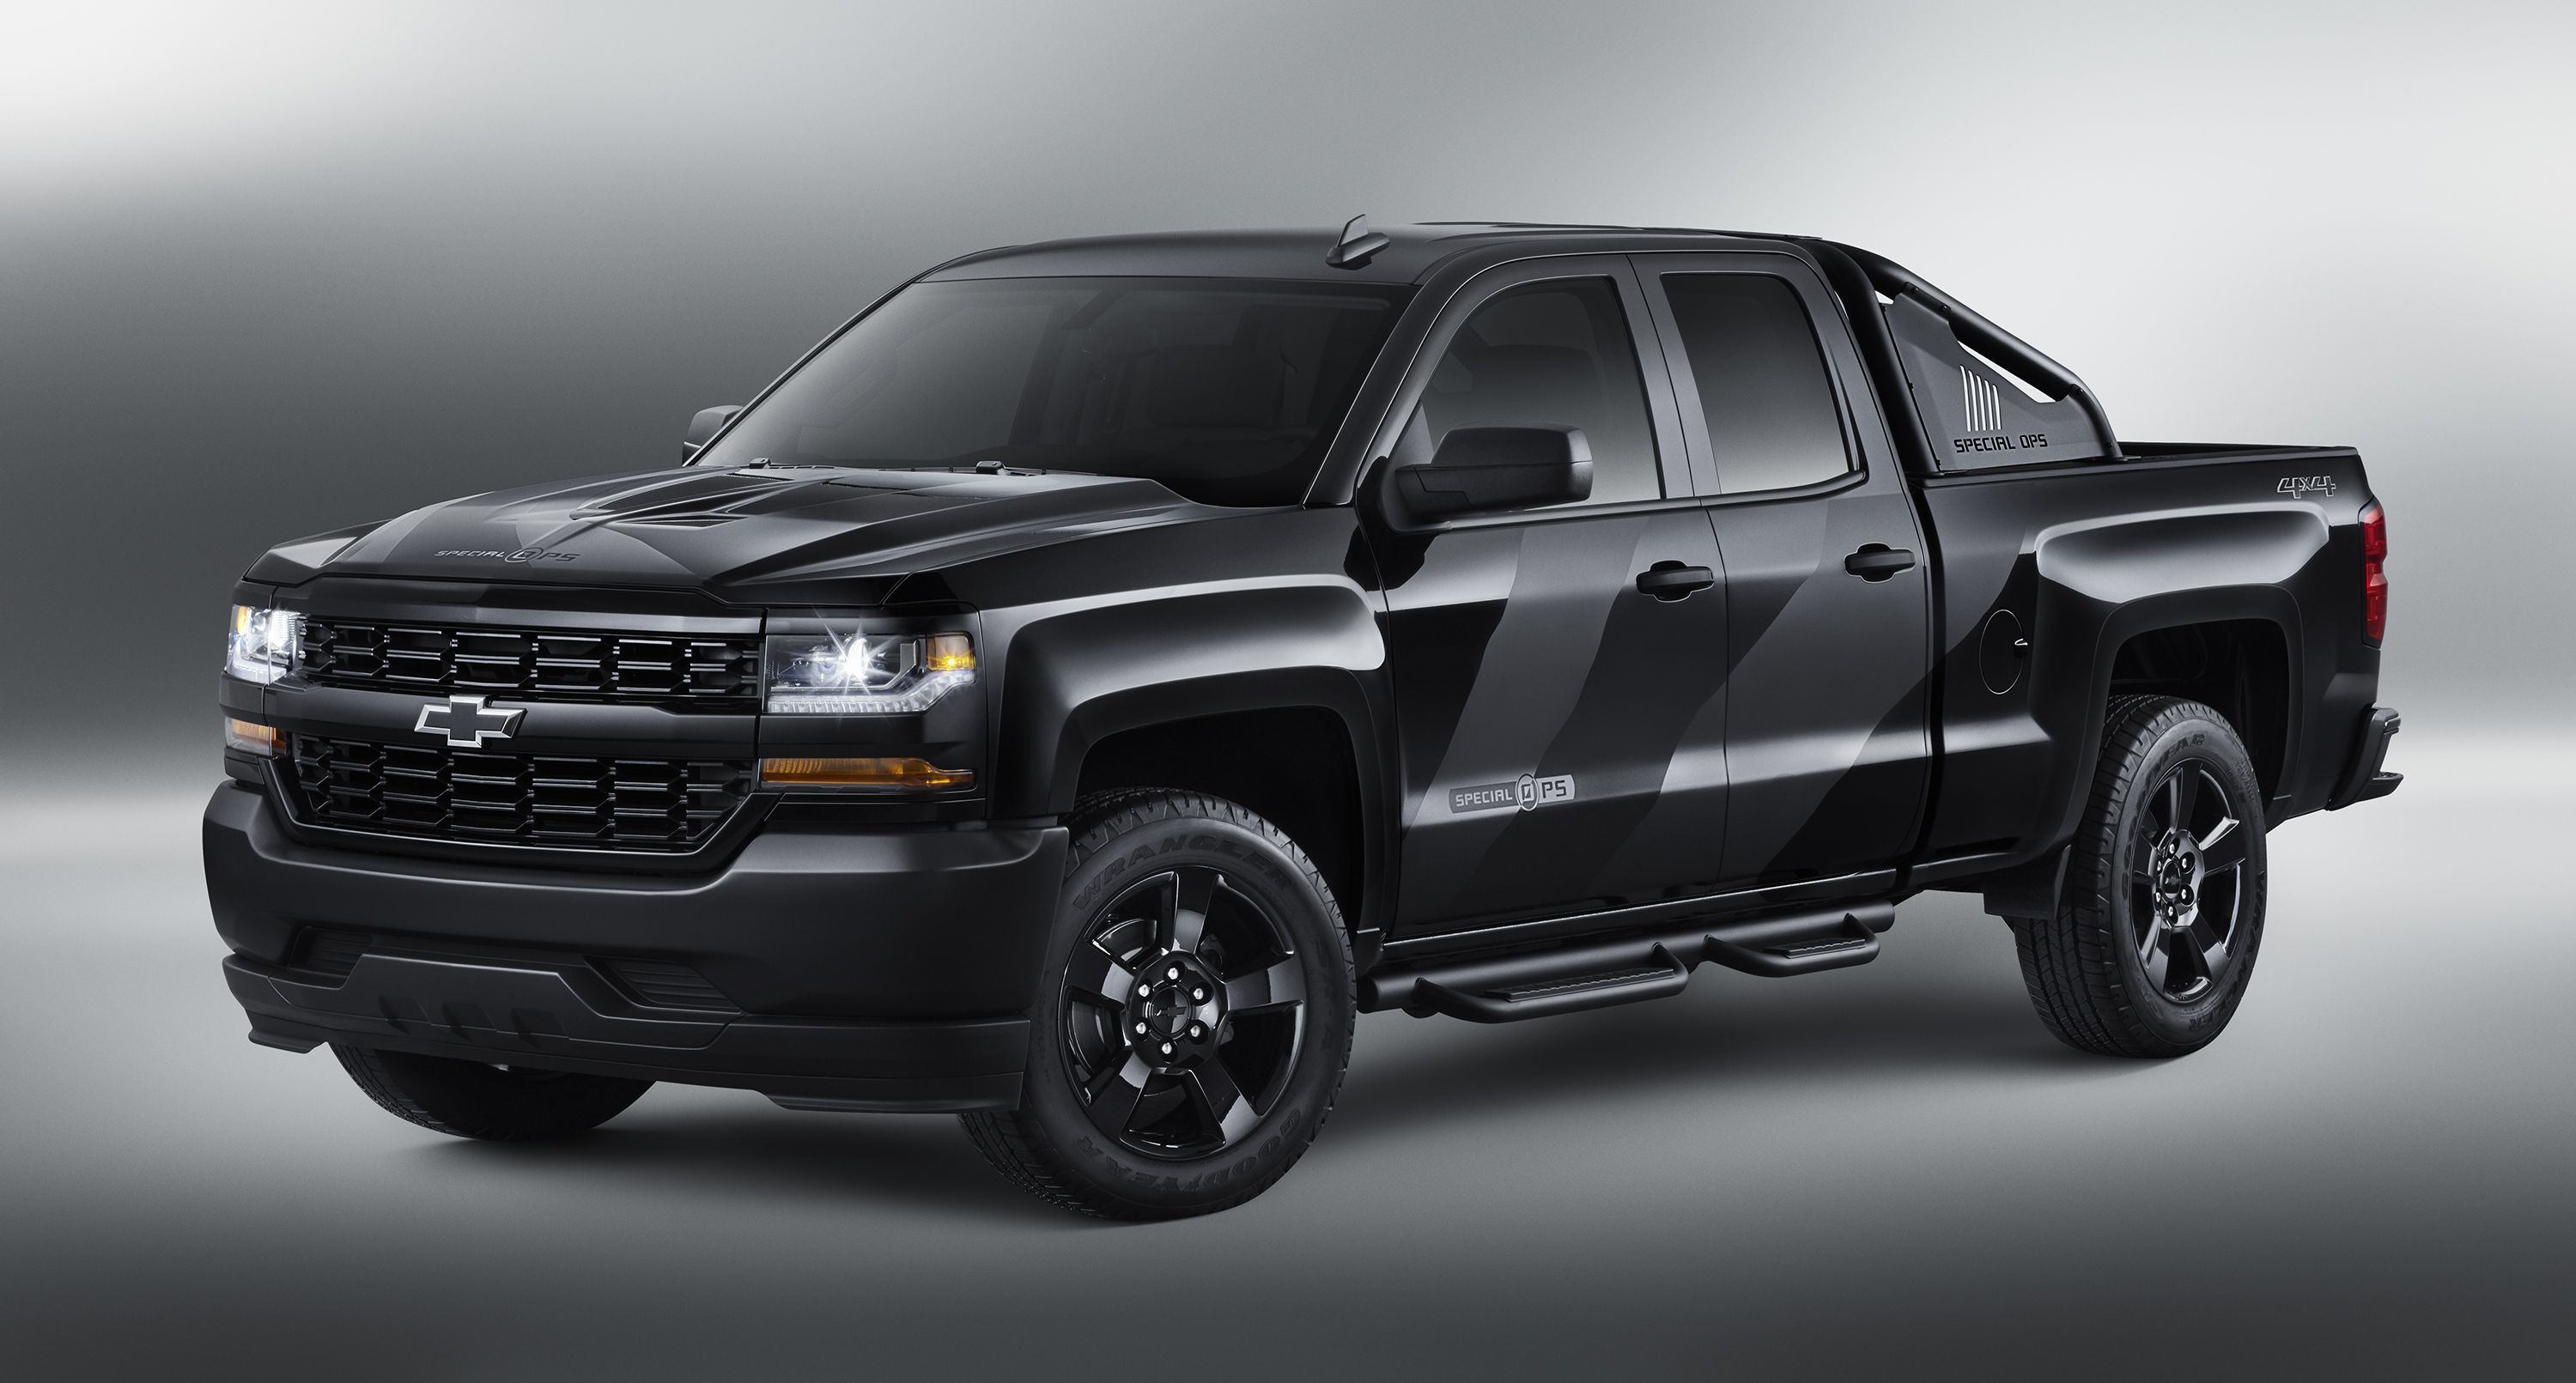 Silverado Special Ops Price >> Chevy Silverado High Desert | A Bowtie Occasion | Pinterest | Chevrolet, Chevy and Trucks